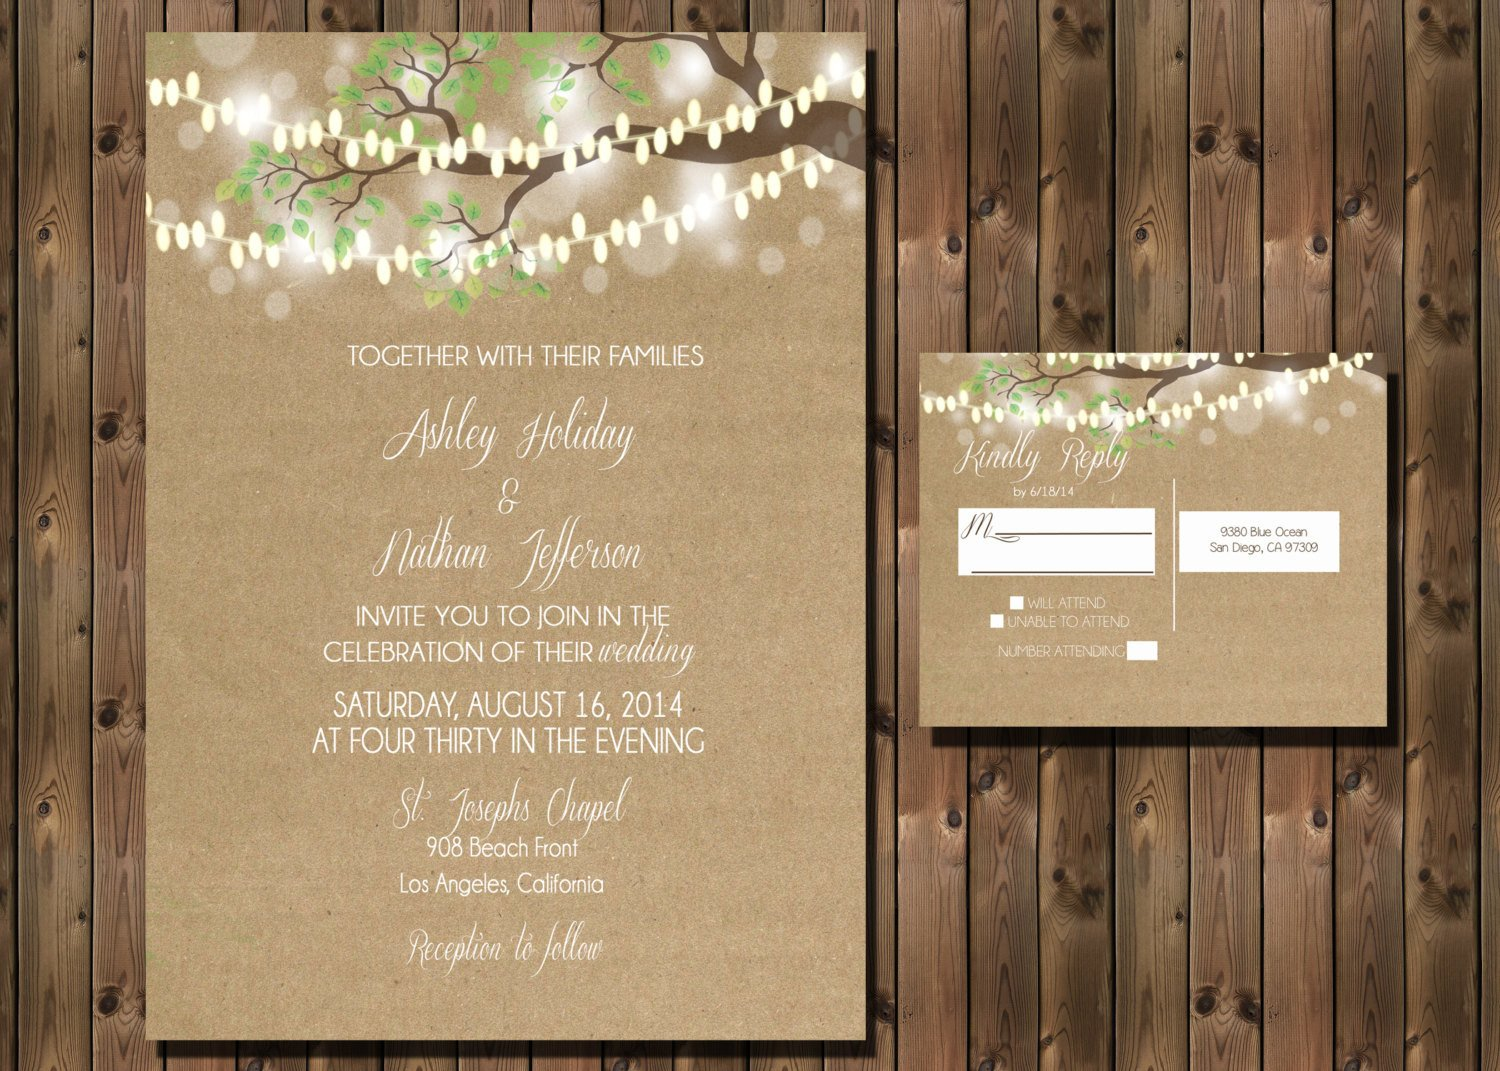 Rustic Wedding Invitation Background Rustic Wedding Invitation with Lights In Tree On Kraft